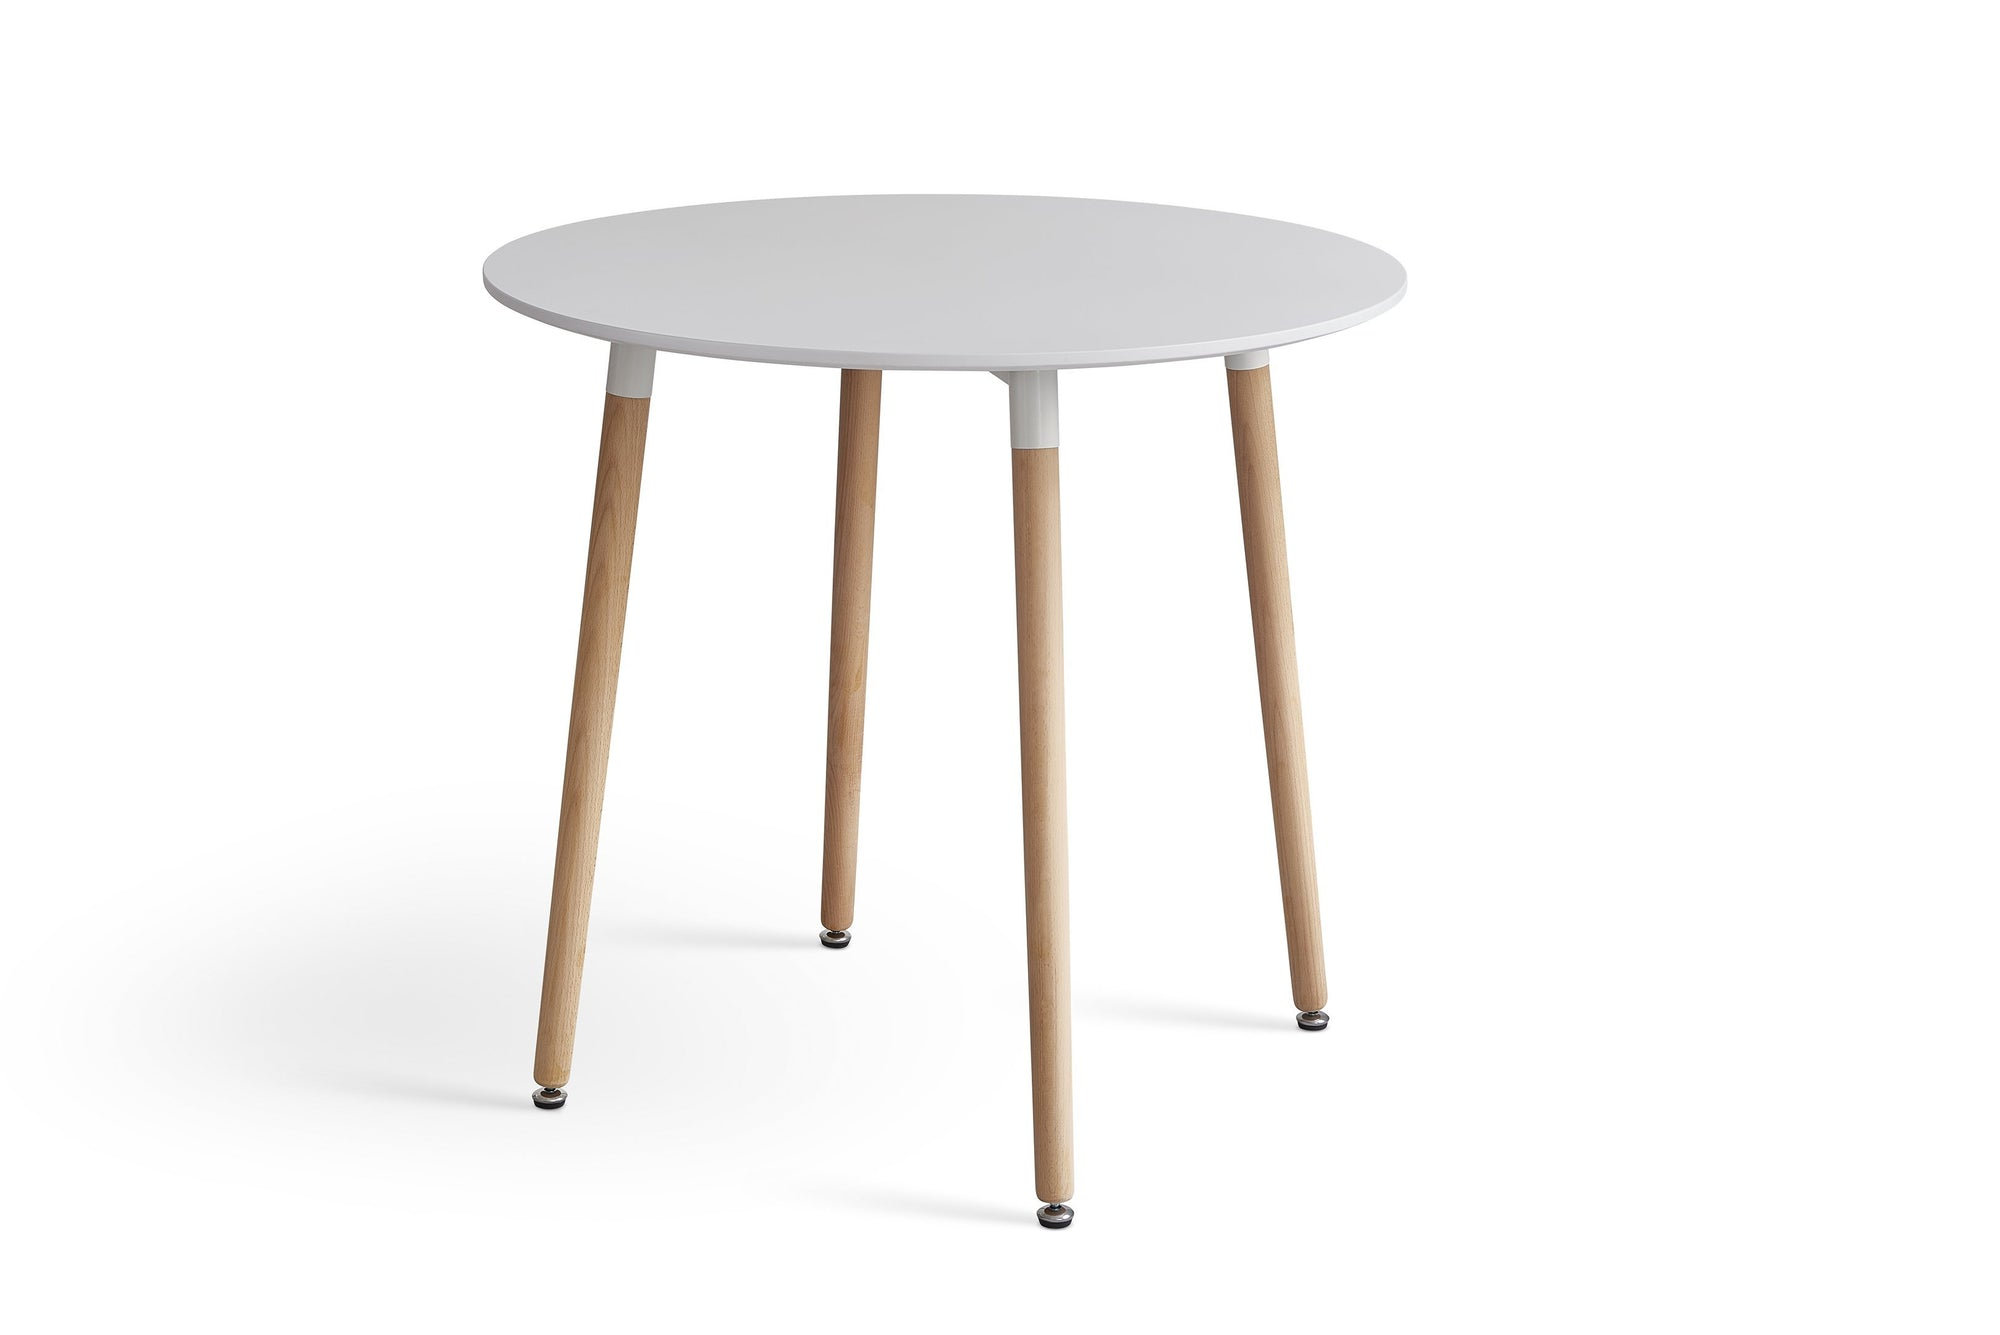 Table de Cuisine Moderne Ronde - Laura James